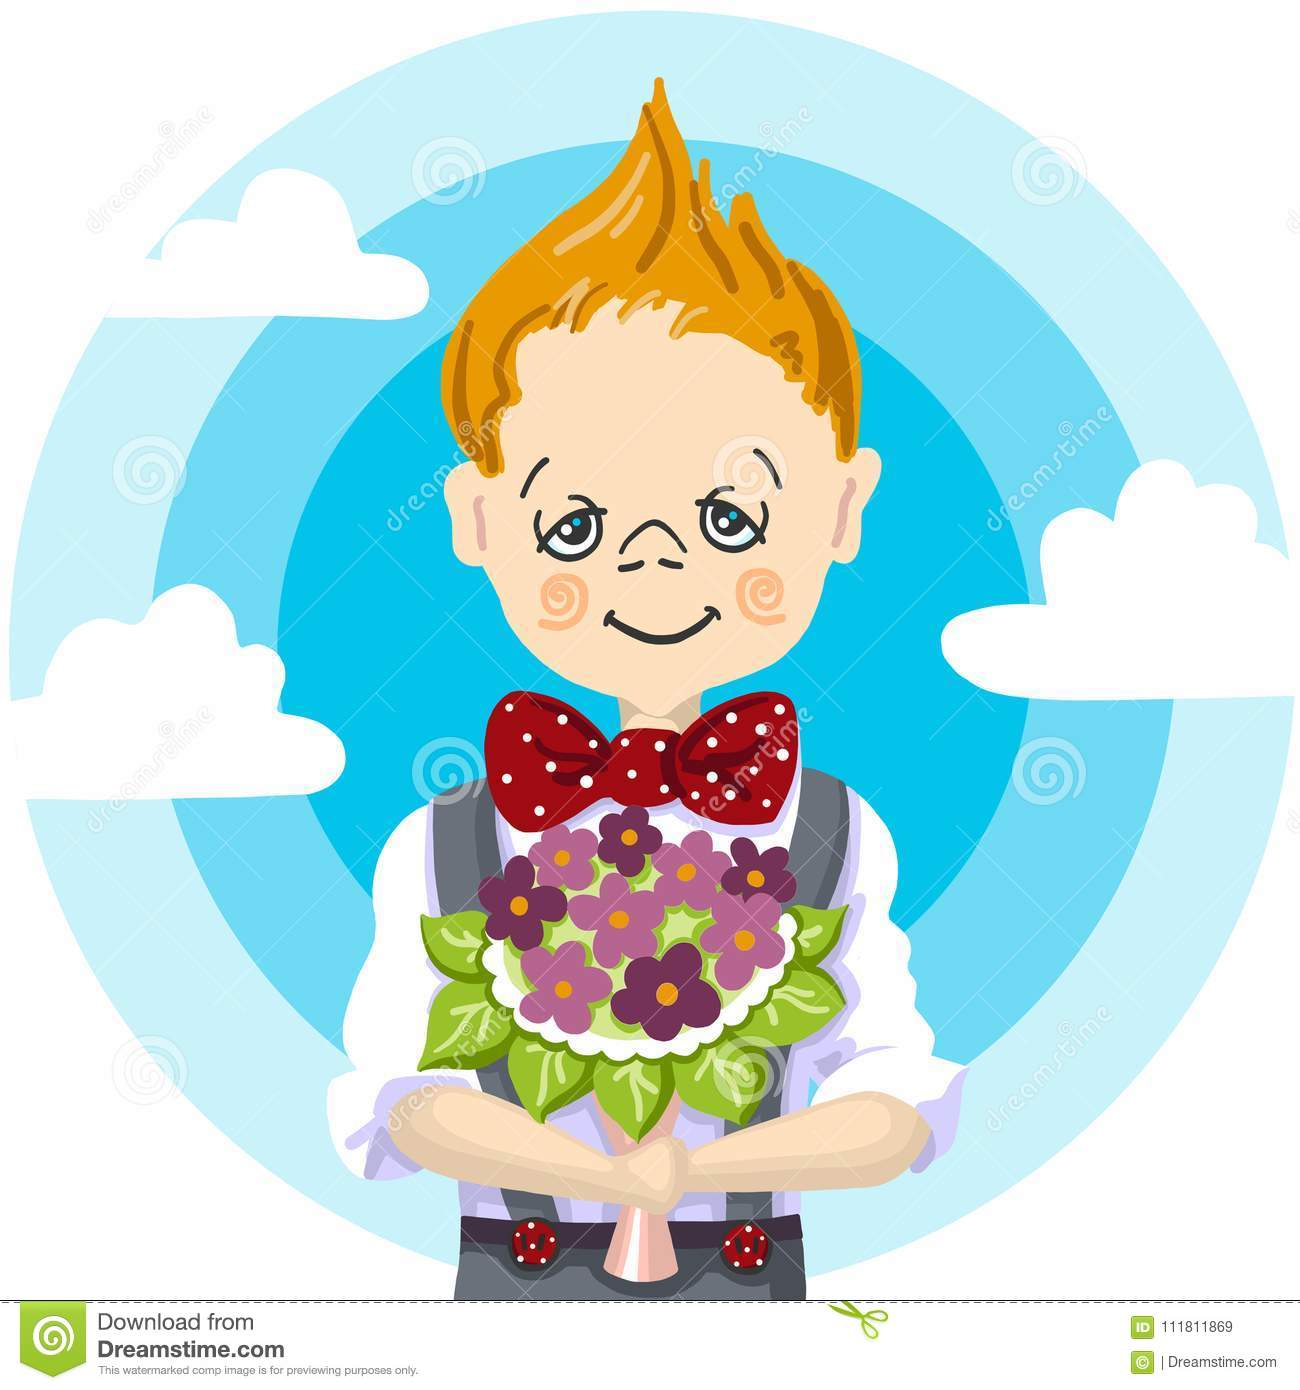 hight resolution of 1st september school day education smile school boy blond hair who take a bouquet